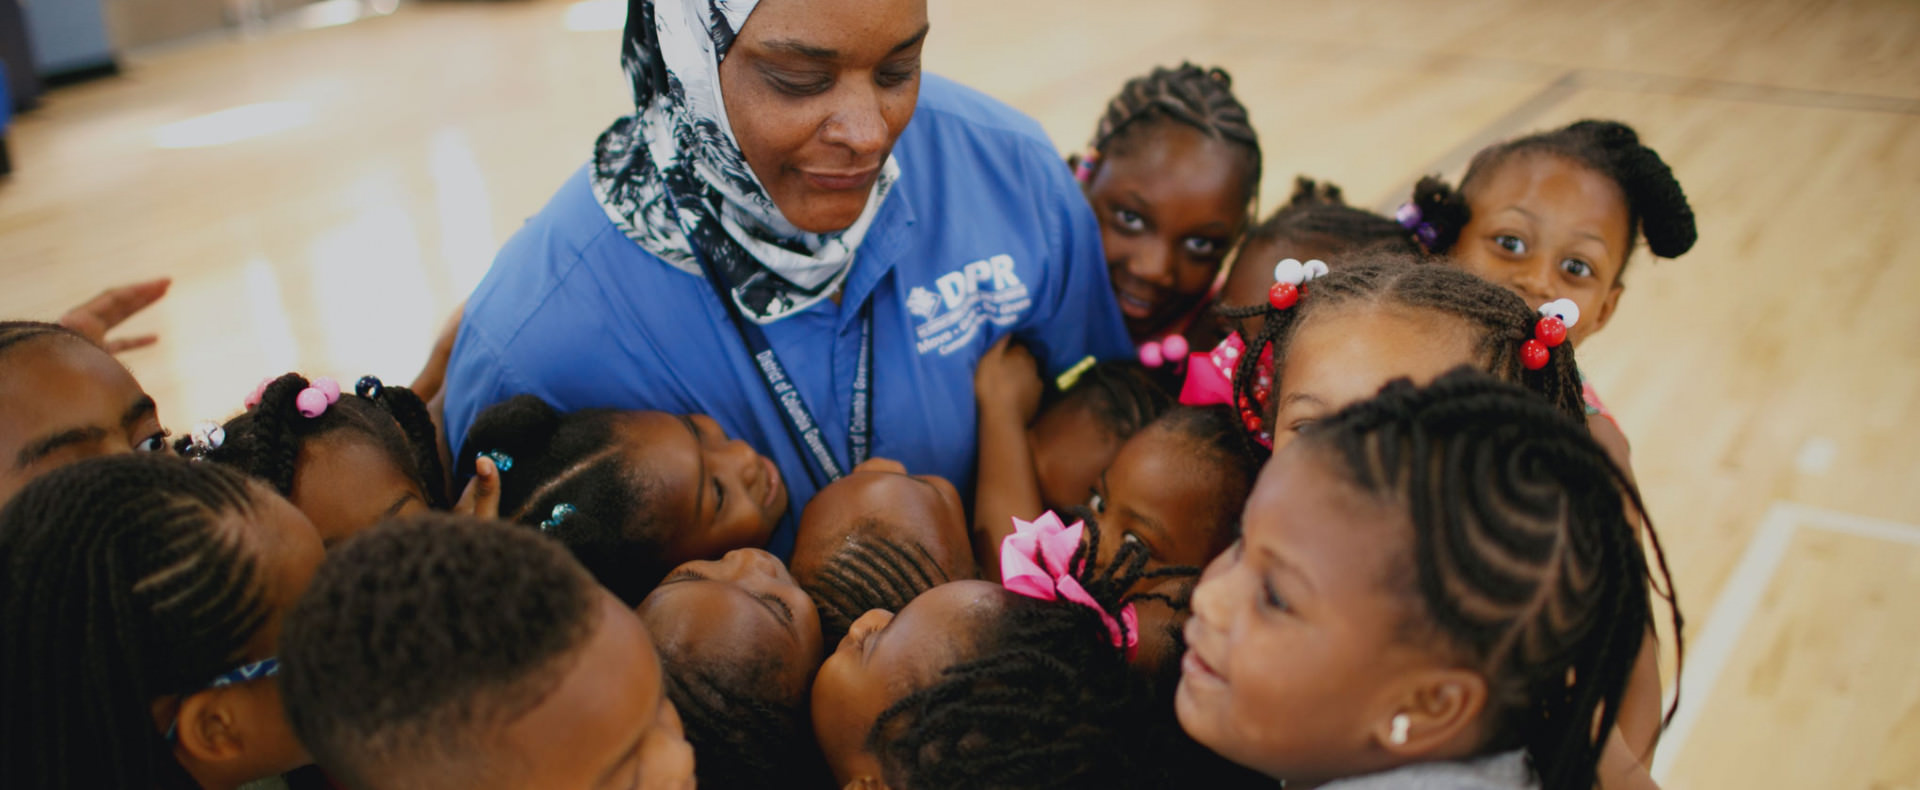 Woman surrounded by smiling children in a school gym